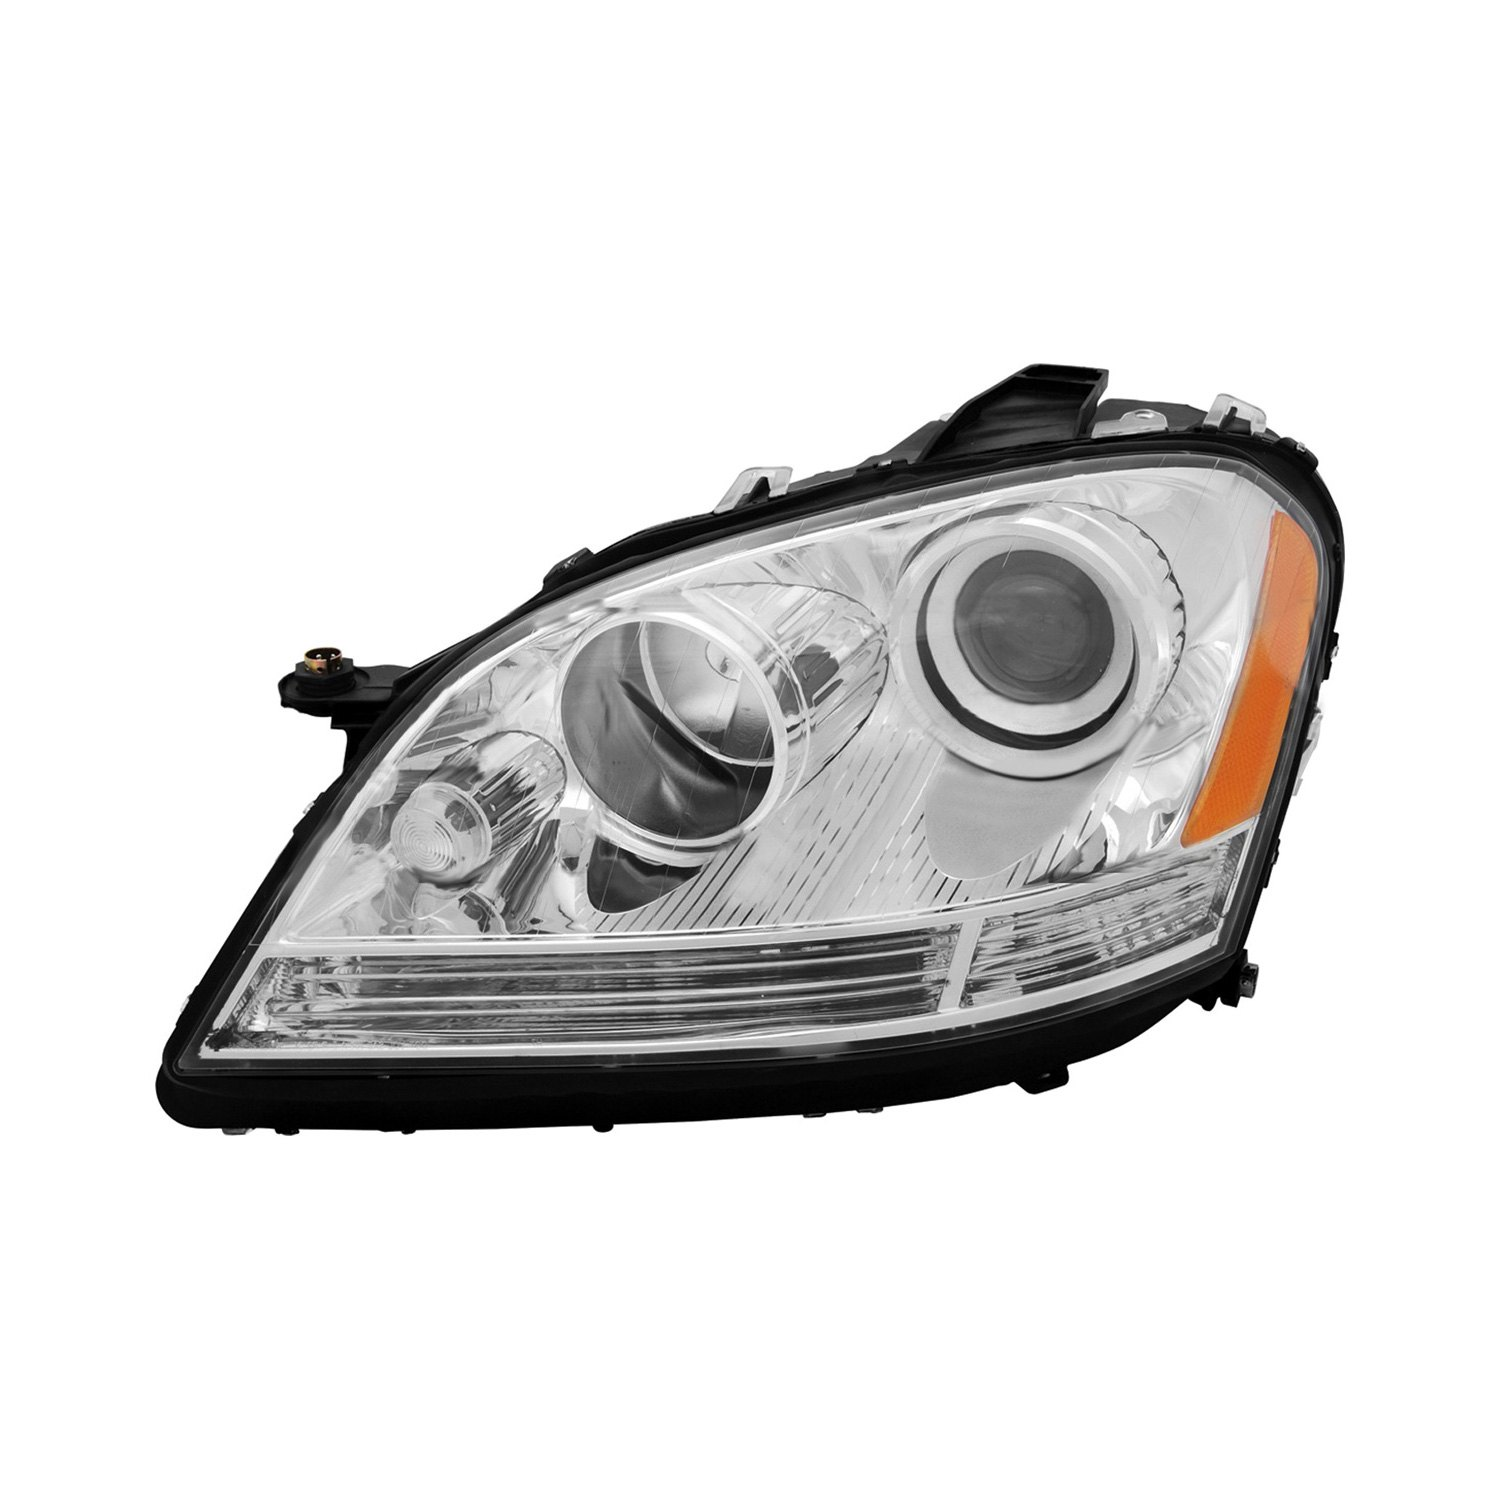 Tyc mercedes ml320 ml350 ml500 ml63 amg sport for Mercedes benz headlight replacement